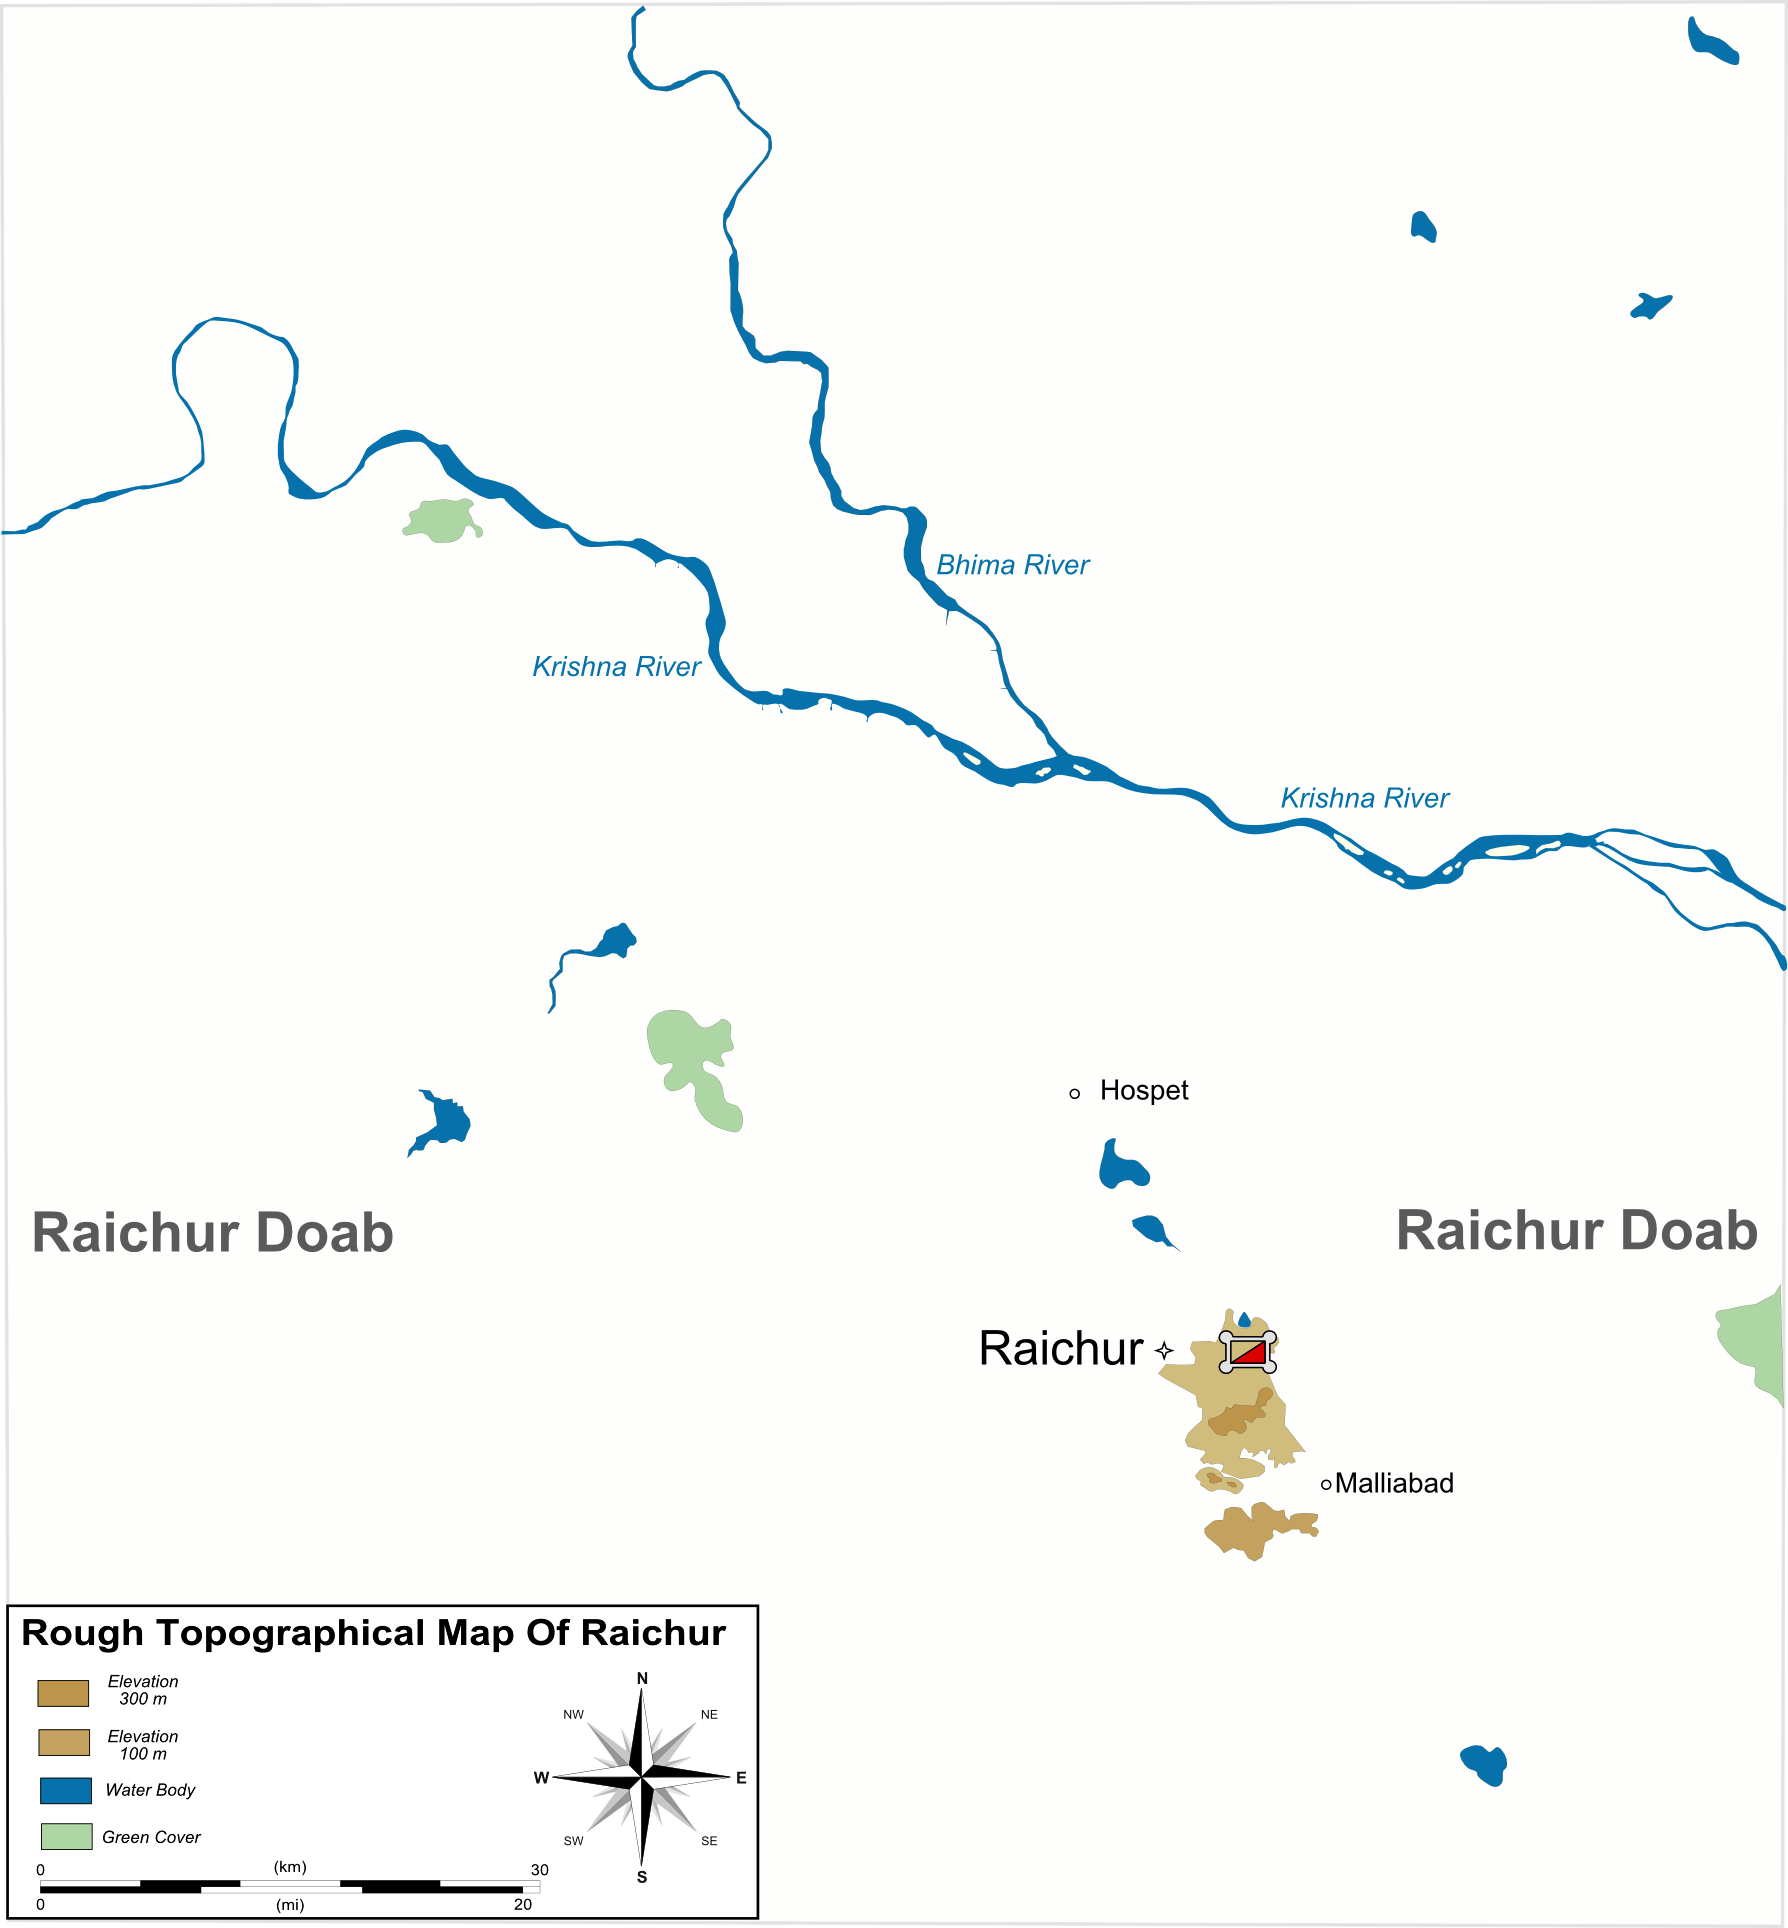 battle of raichur We now come to the battle itself, waged between krishnadeva raya of vijayanagara and ismail adil khan of bijapur two sources can guide us here.